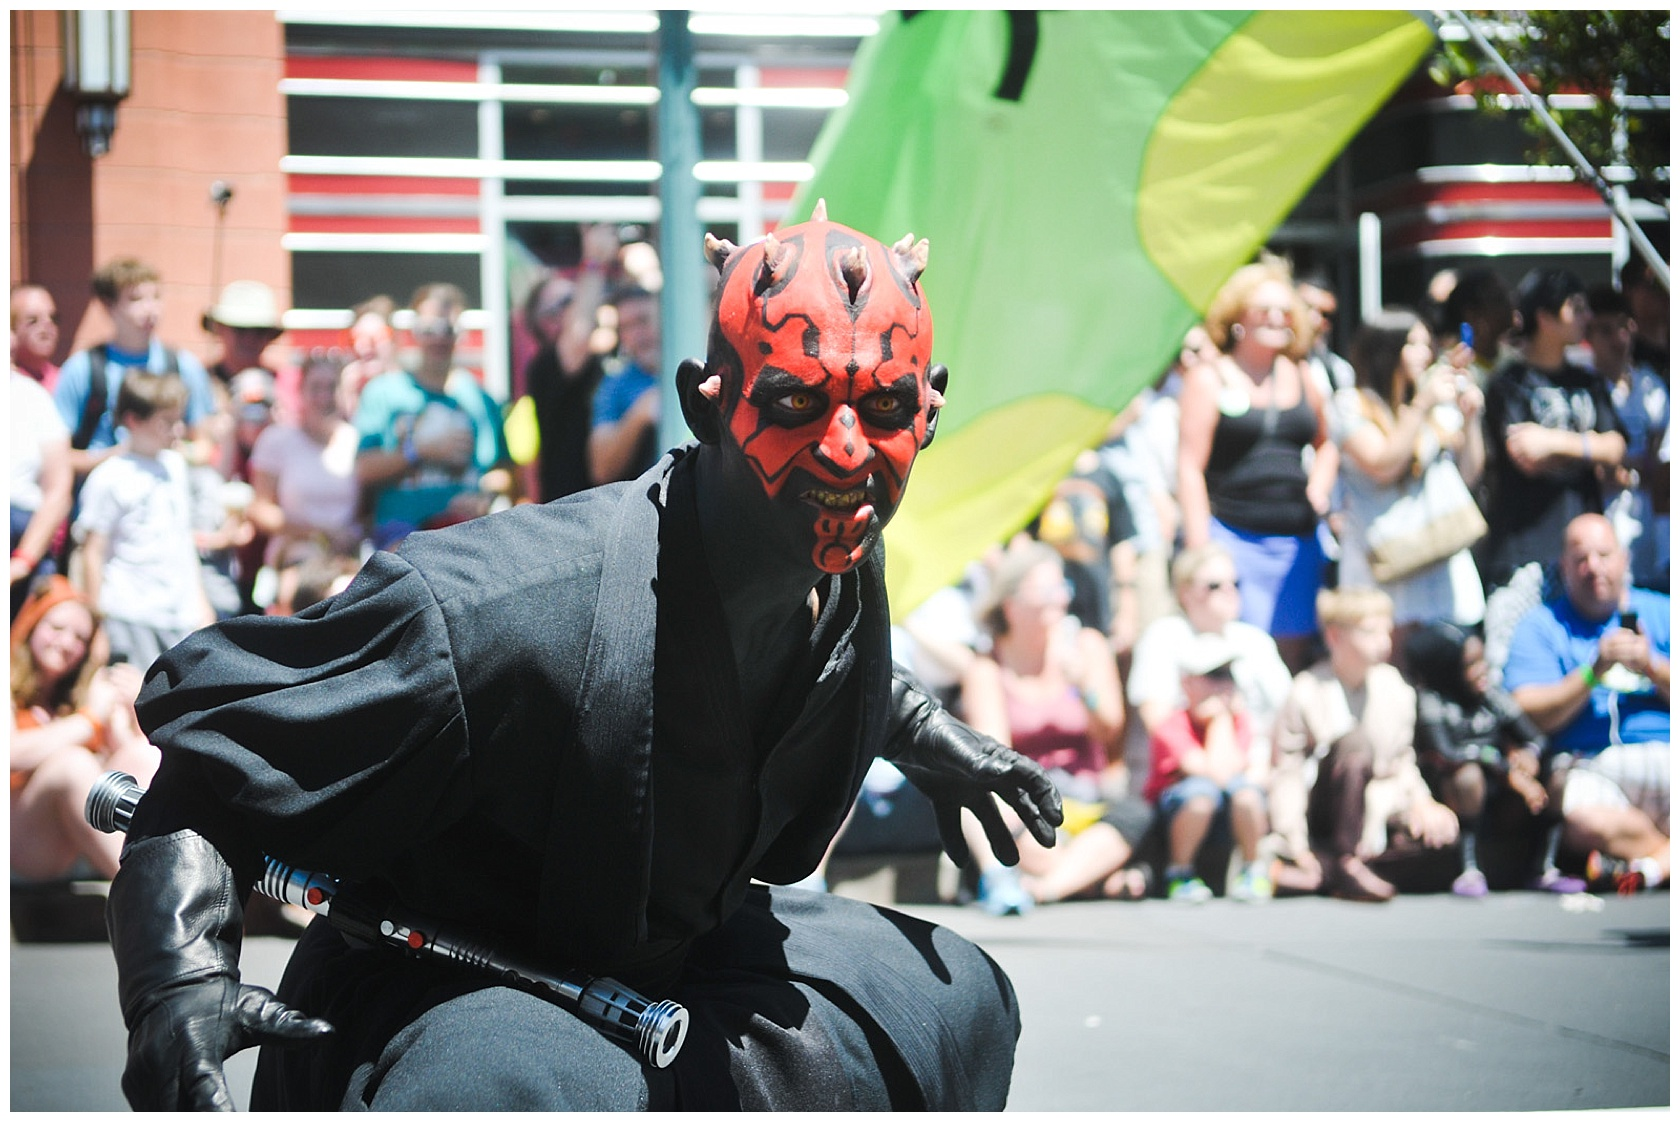 The scary Darth Maul.